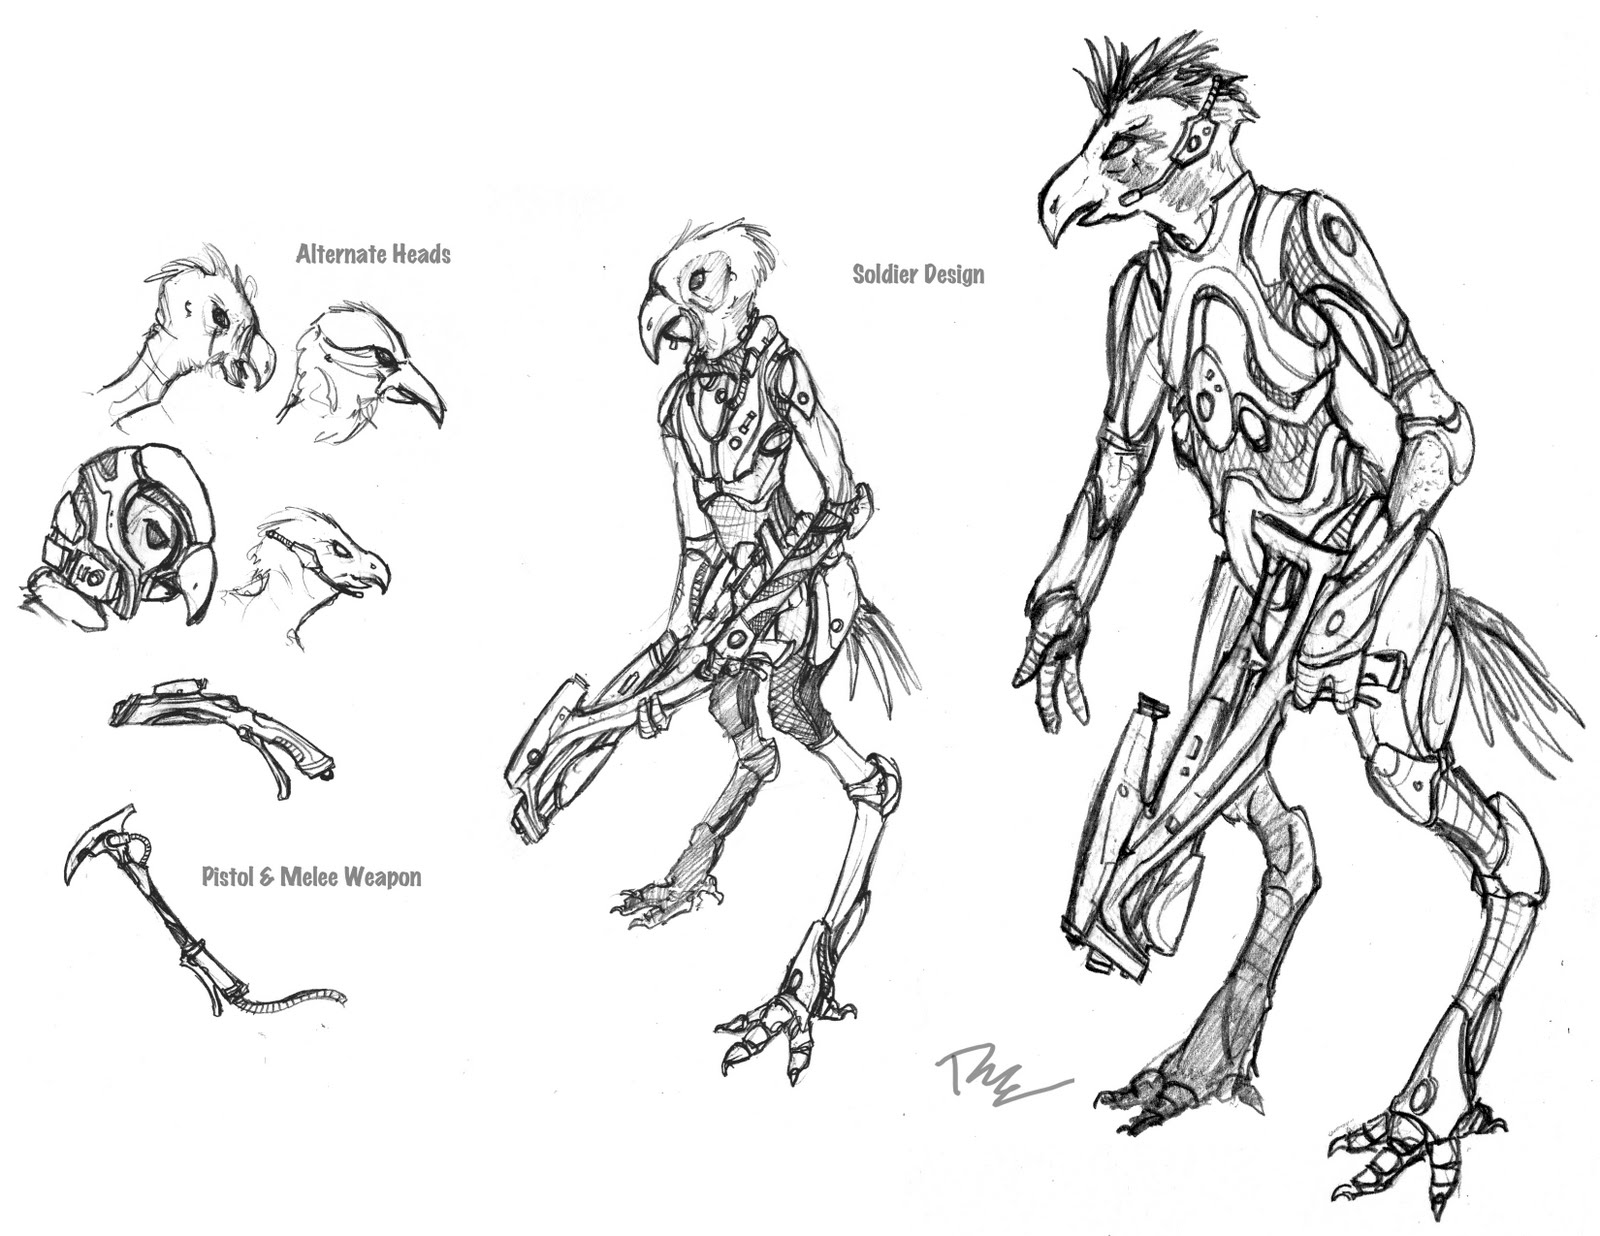 Robot Concept Drawings Concept Drawings Showing a